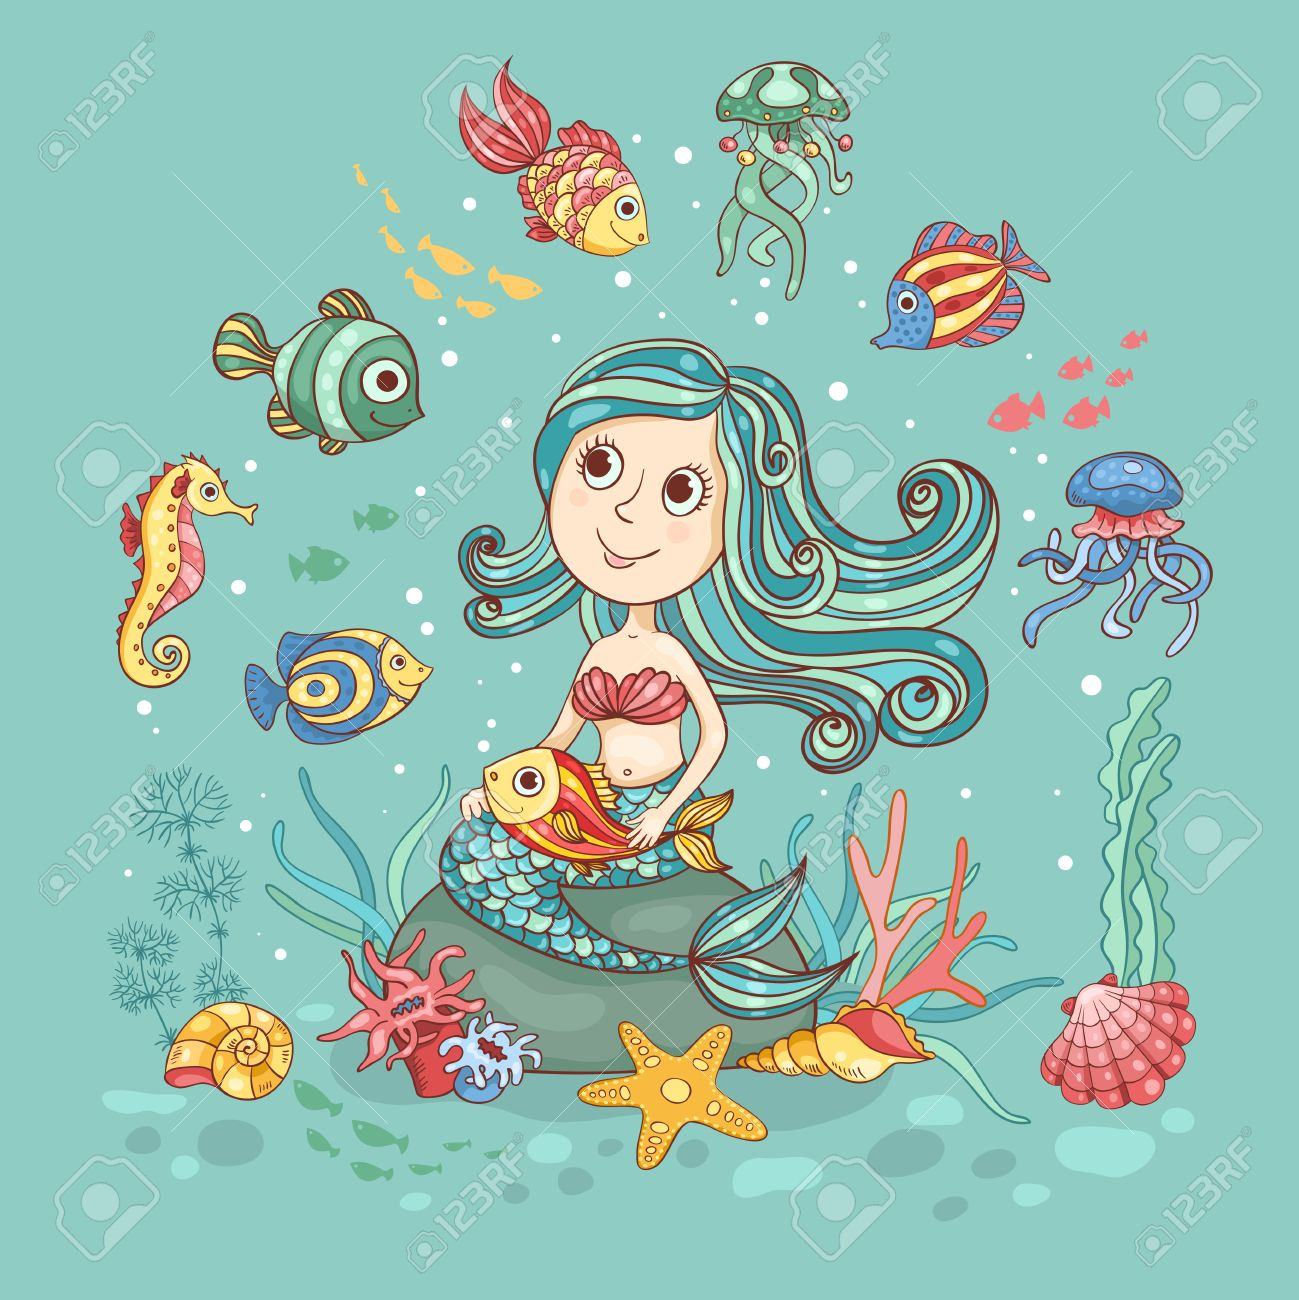 mermaid images u0026 stock pictures royalty free mermaid photos and